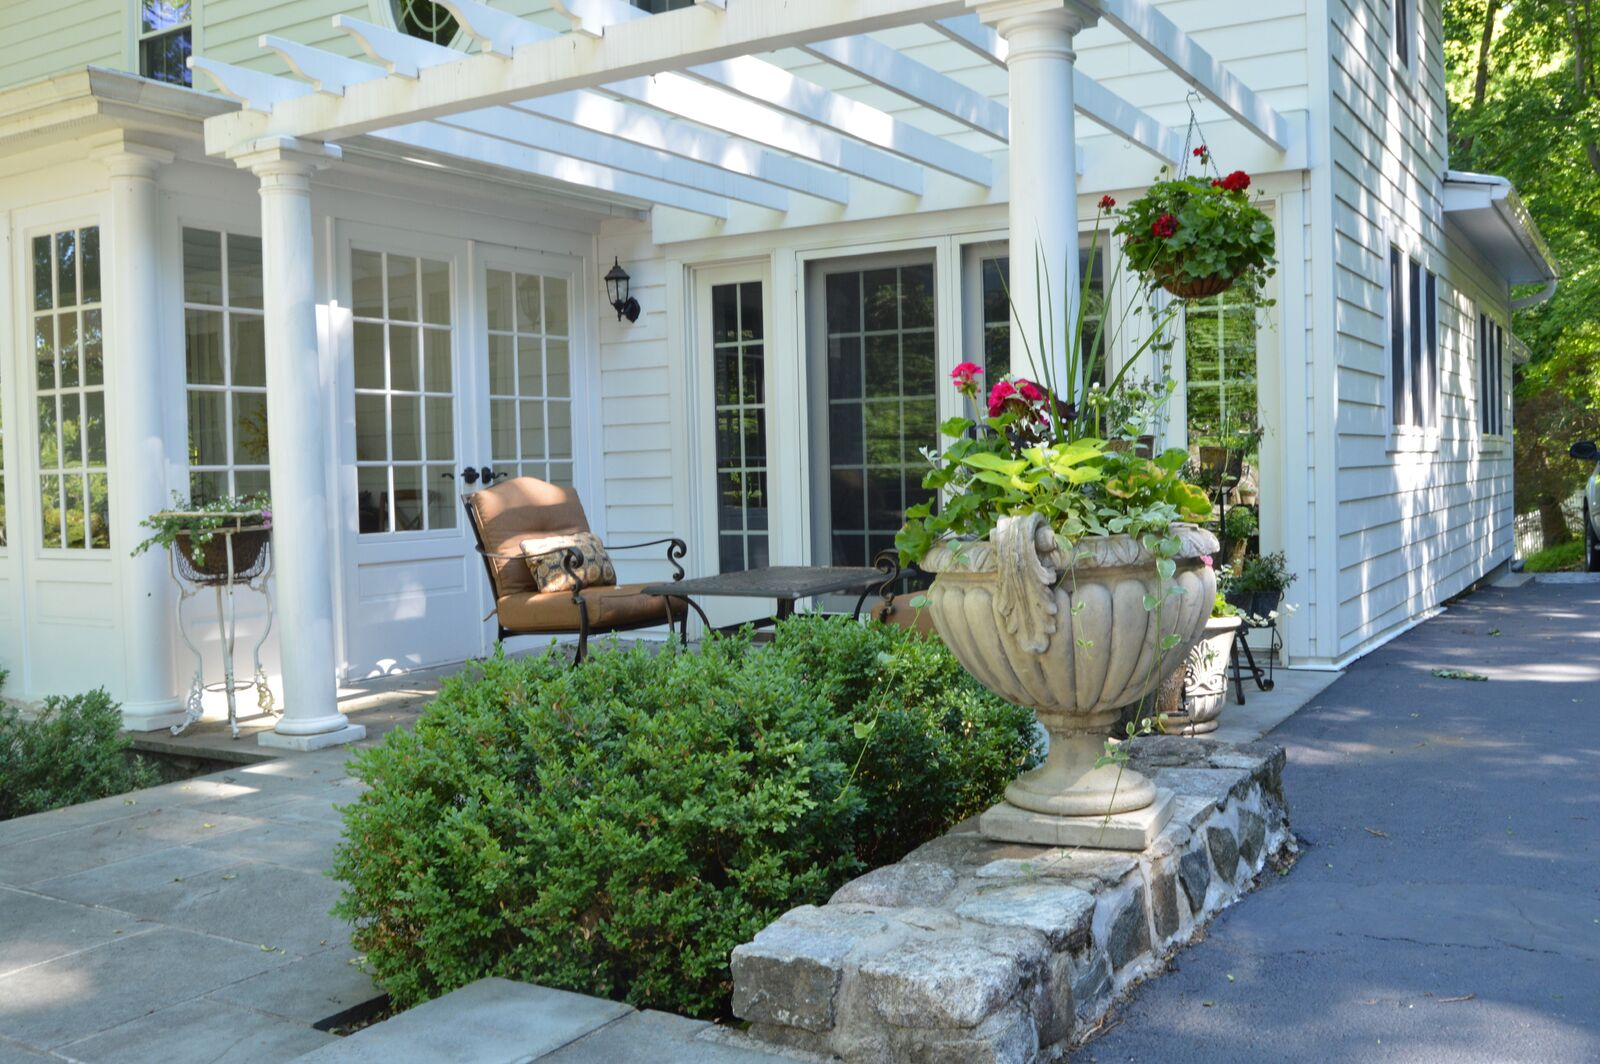 Landscaping Ideas for Improving Flow Between Your Indoor and Outdoor Spaces in Somers, NY